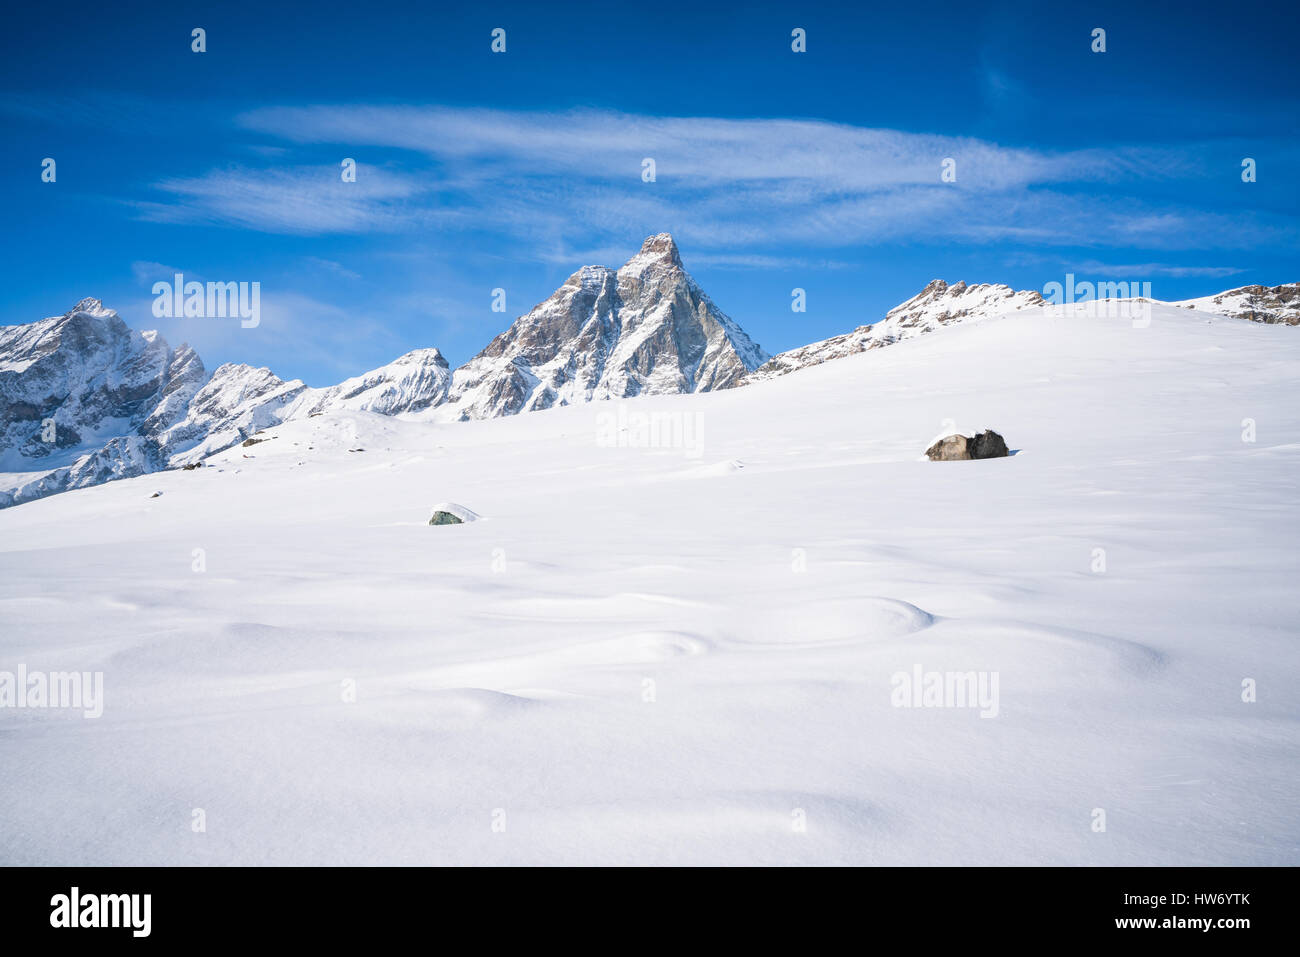 View of Italian Alps and Matterhorn Peak in the Aosta Valley region of northwest Italy. - Stock Image